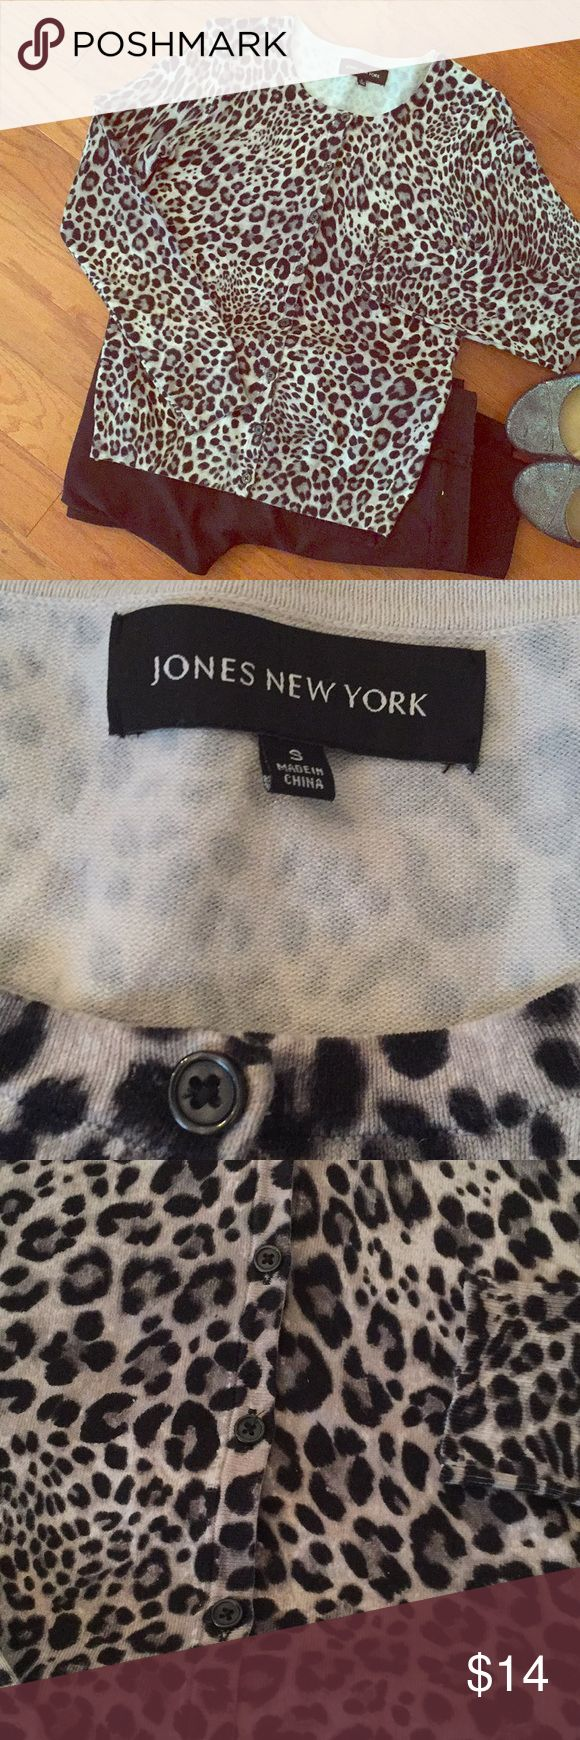 Jones New York cardigan Super cute Jones New York animal print cardigan. Dress up or dress down! Has all the buttons and in great condition. Jones New York Sweaters Cardigans